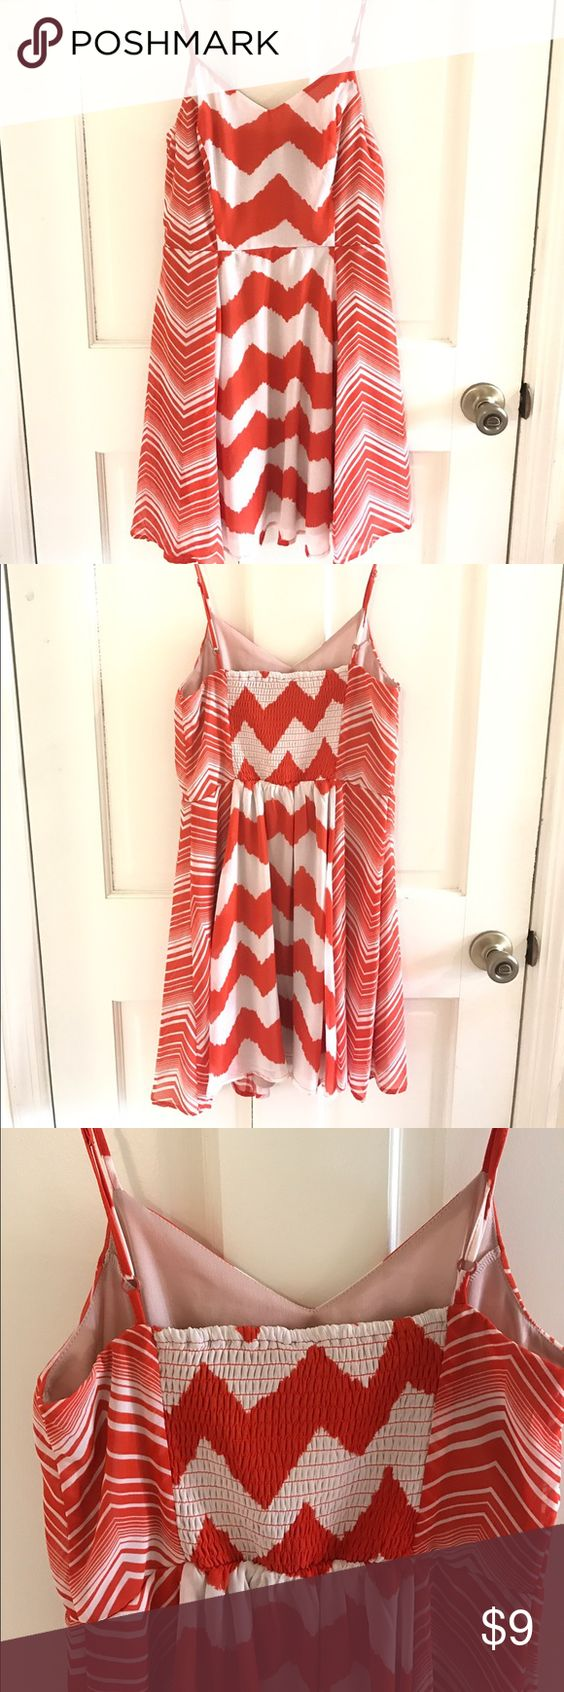 Fire Los Angeles summer spaghetti strap dress M NWOT Orange and cream flowy summer dress accentuates the smaller part or your waist. Fire Los Angeles Dresses Mini